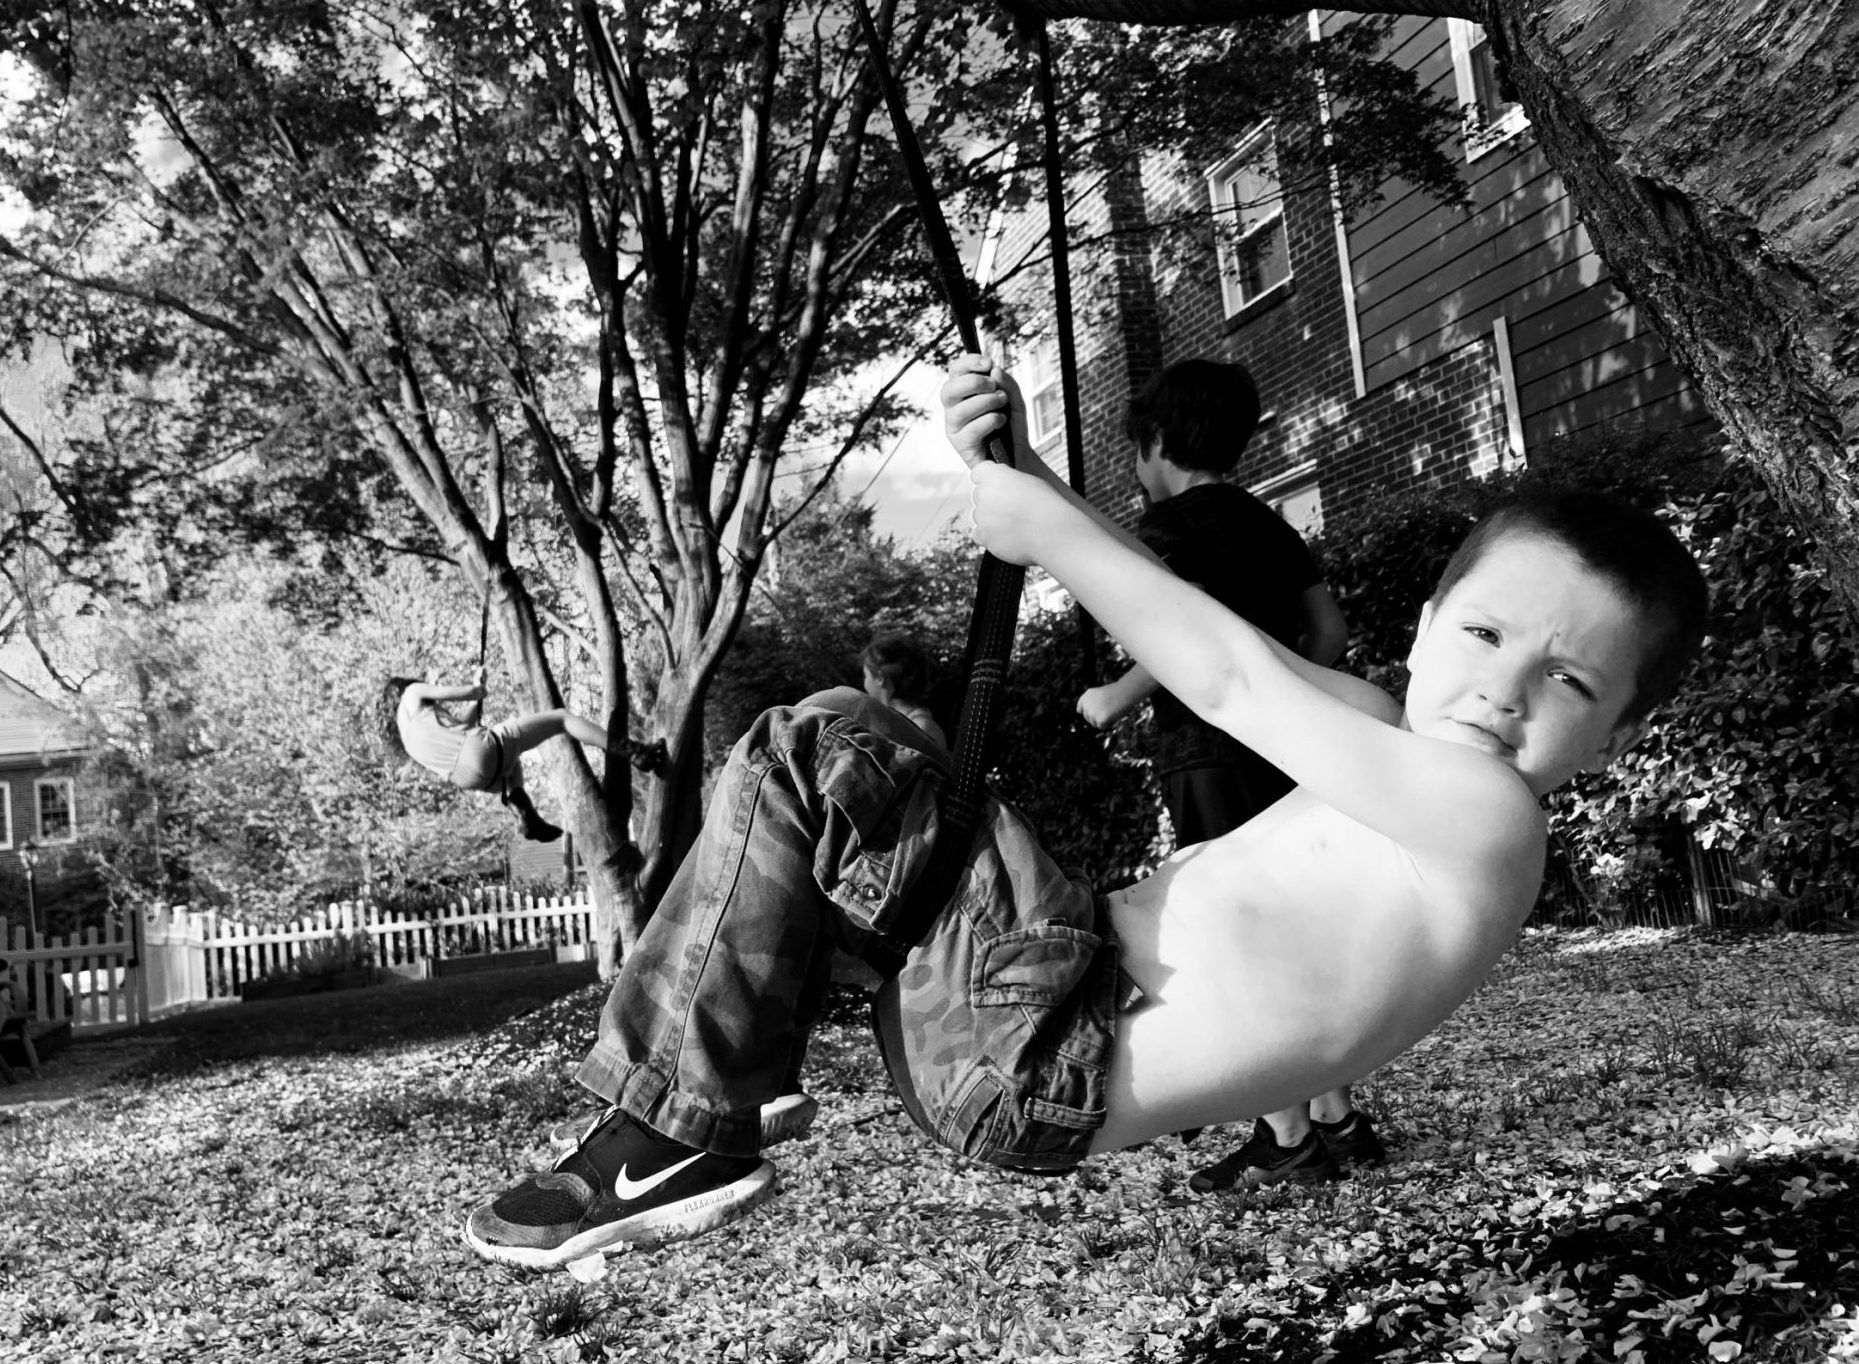 Son of DC widow blog writer Marjorie Brimley holding on to rope swing in backyard